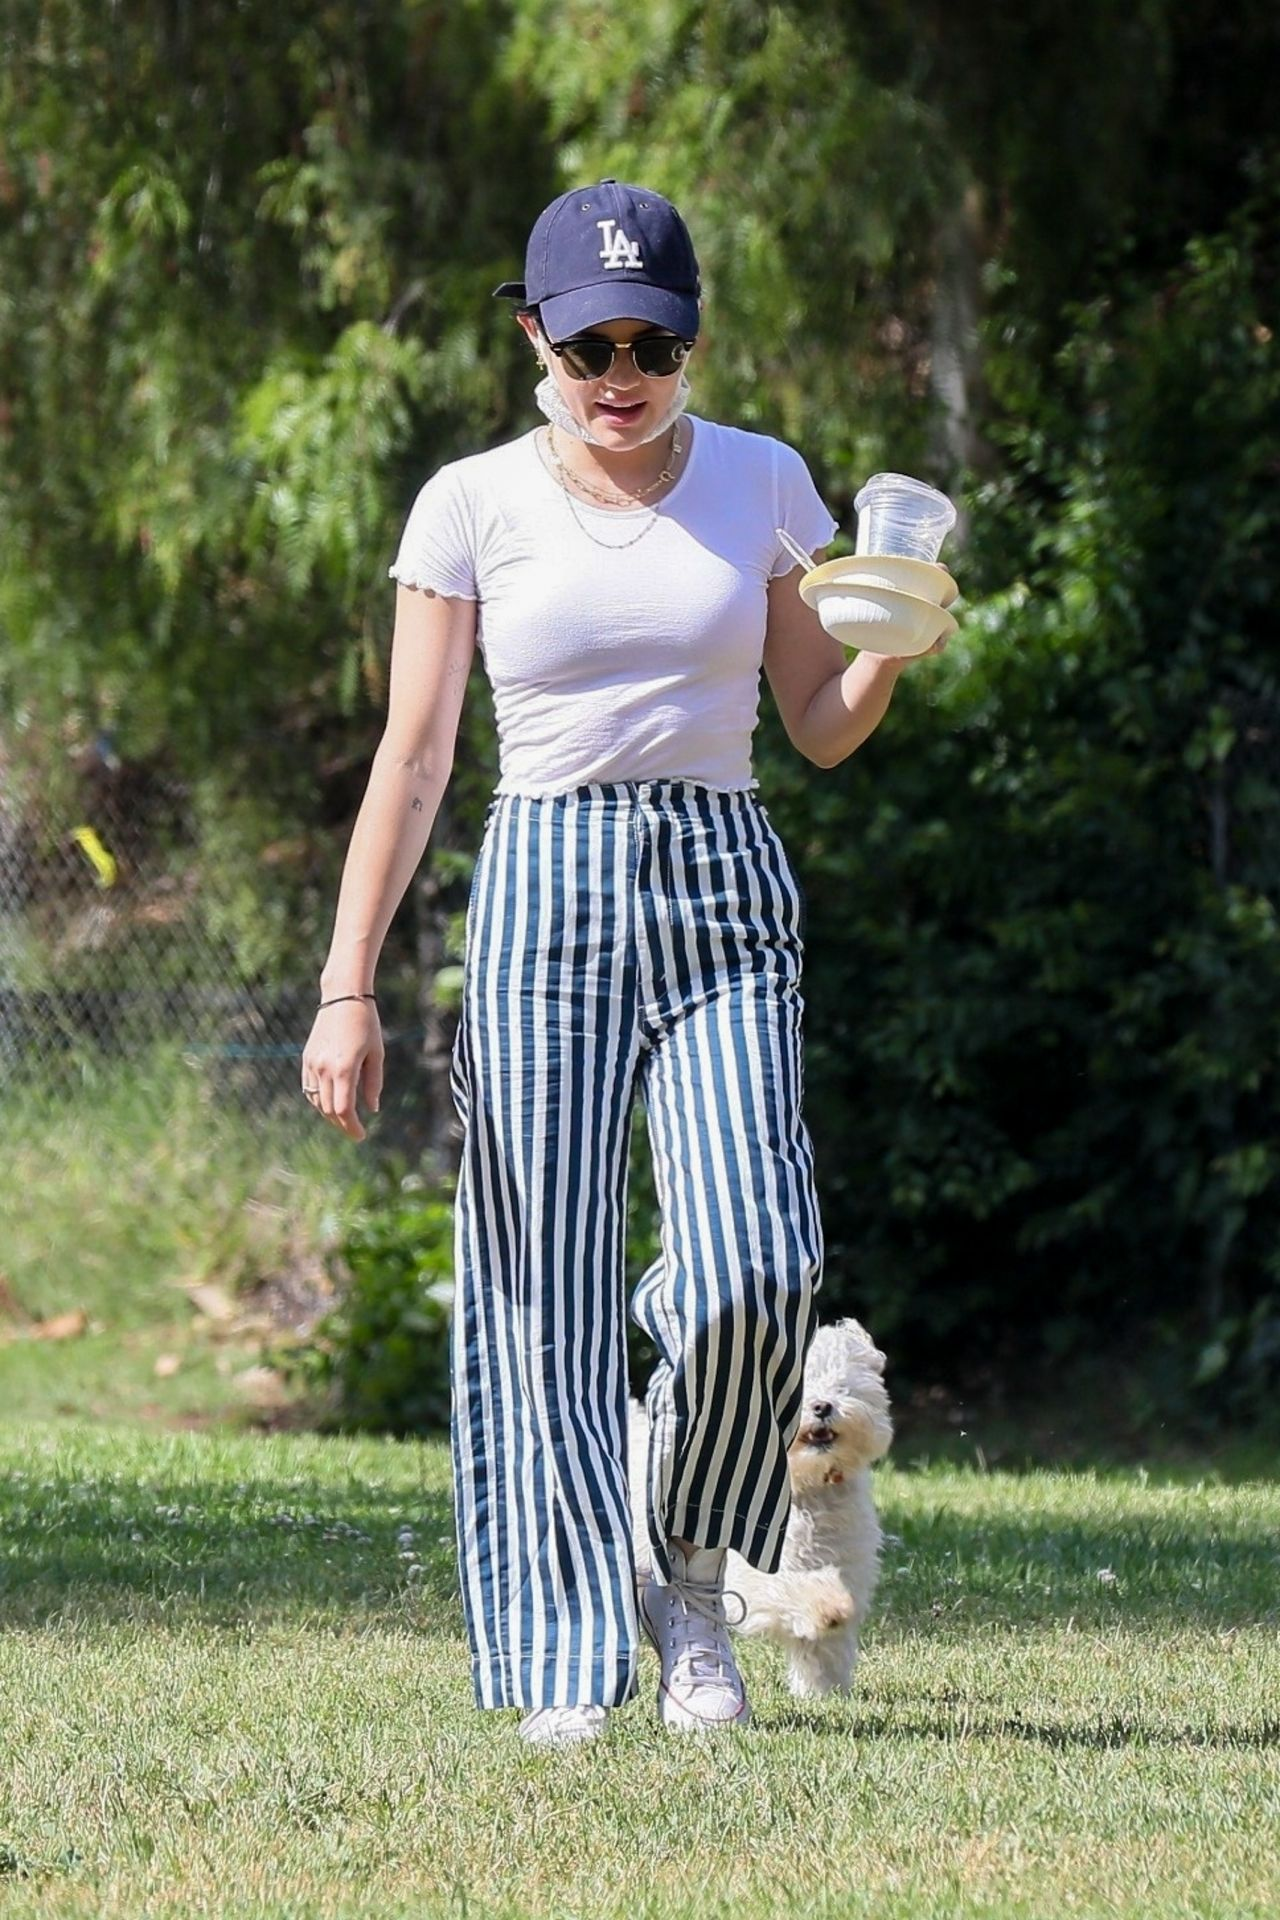 lucy-hale-walking-her-dog-in-the-park-in-los-angeles-05-16-2020